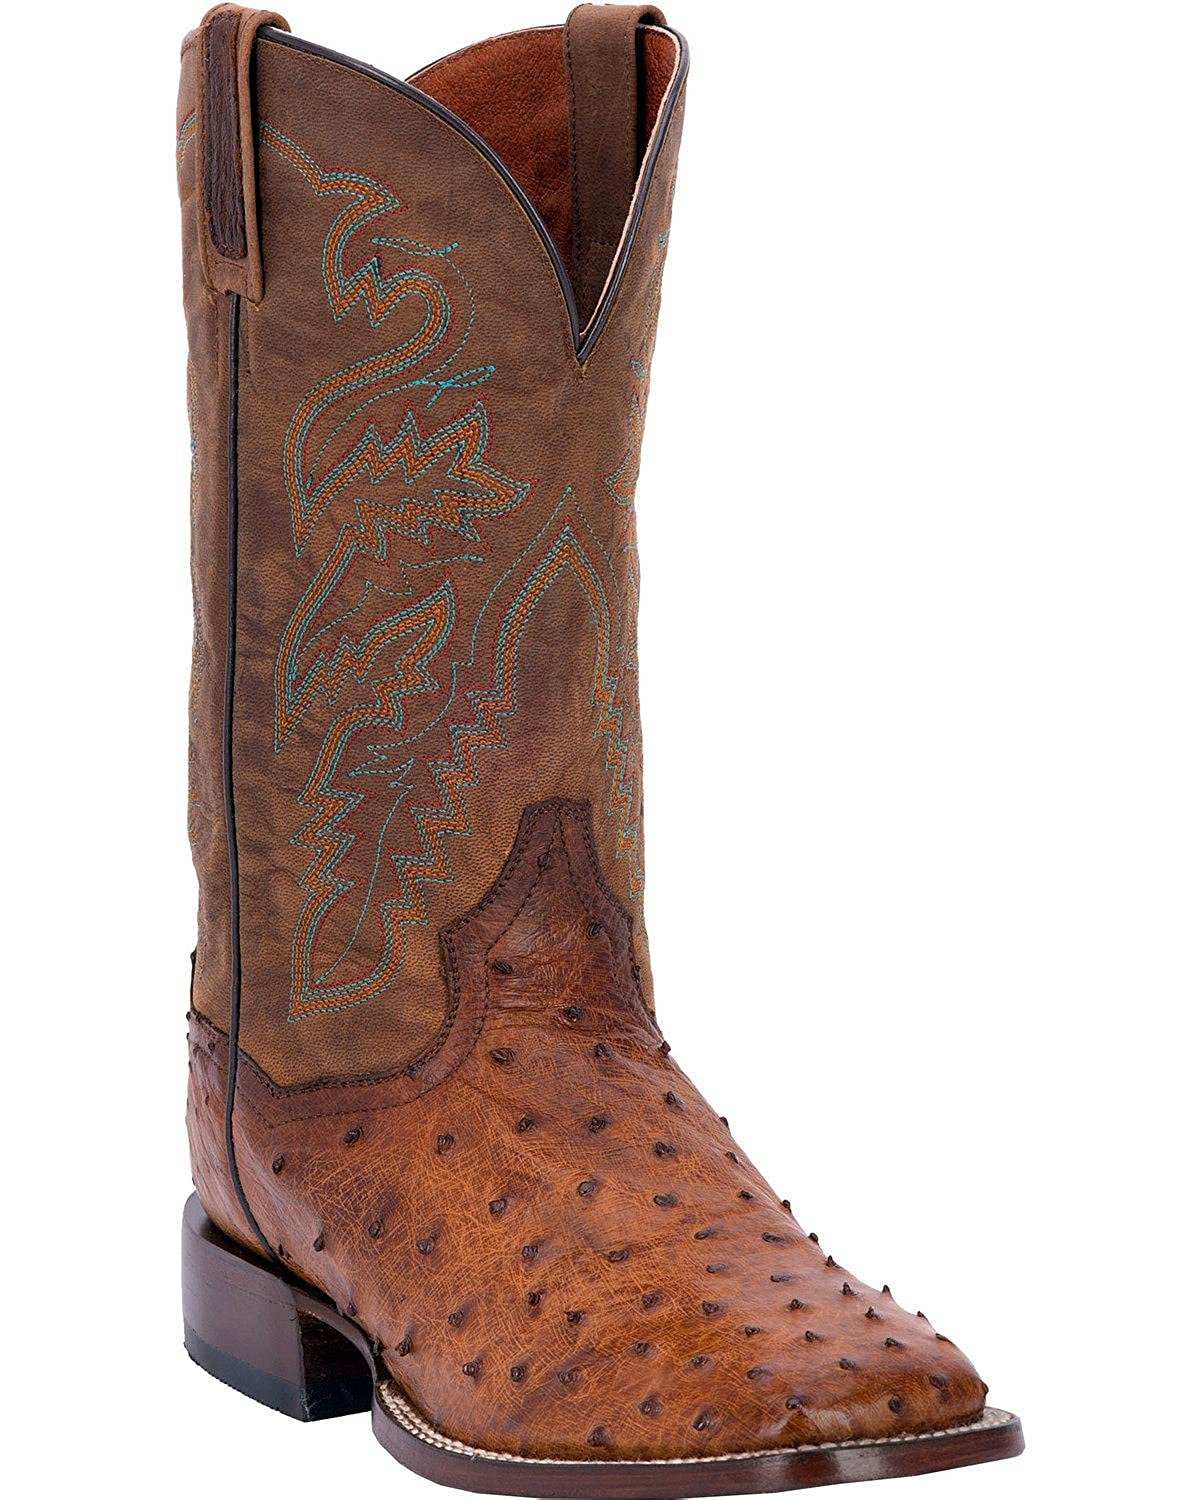 Dan Post Men's Chandler Full Quill Ostrich Cowboy Boot Square Toe - Dps254